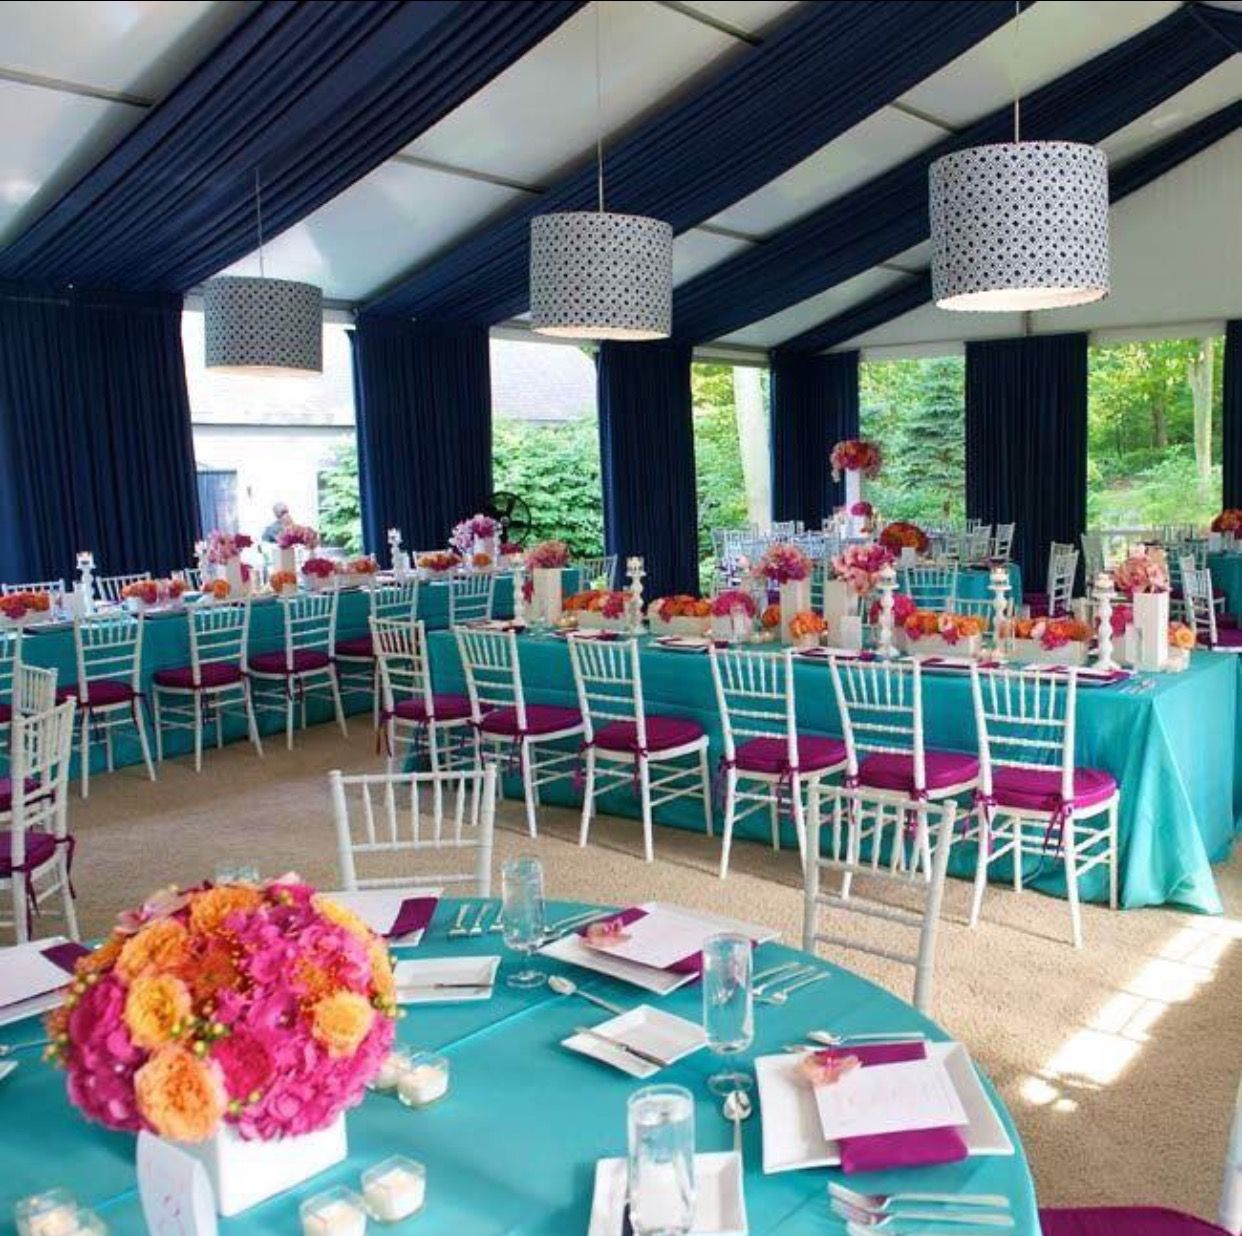 Teal Wedding Ideas For Reception: Backyard Tent Wedding, Tent